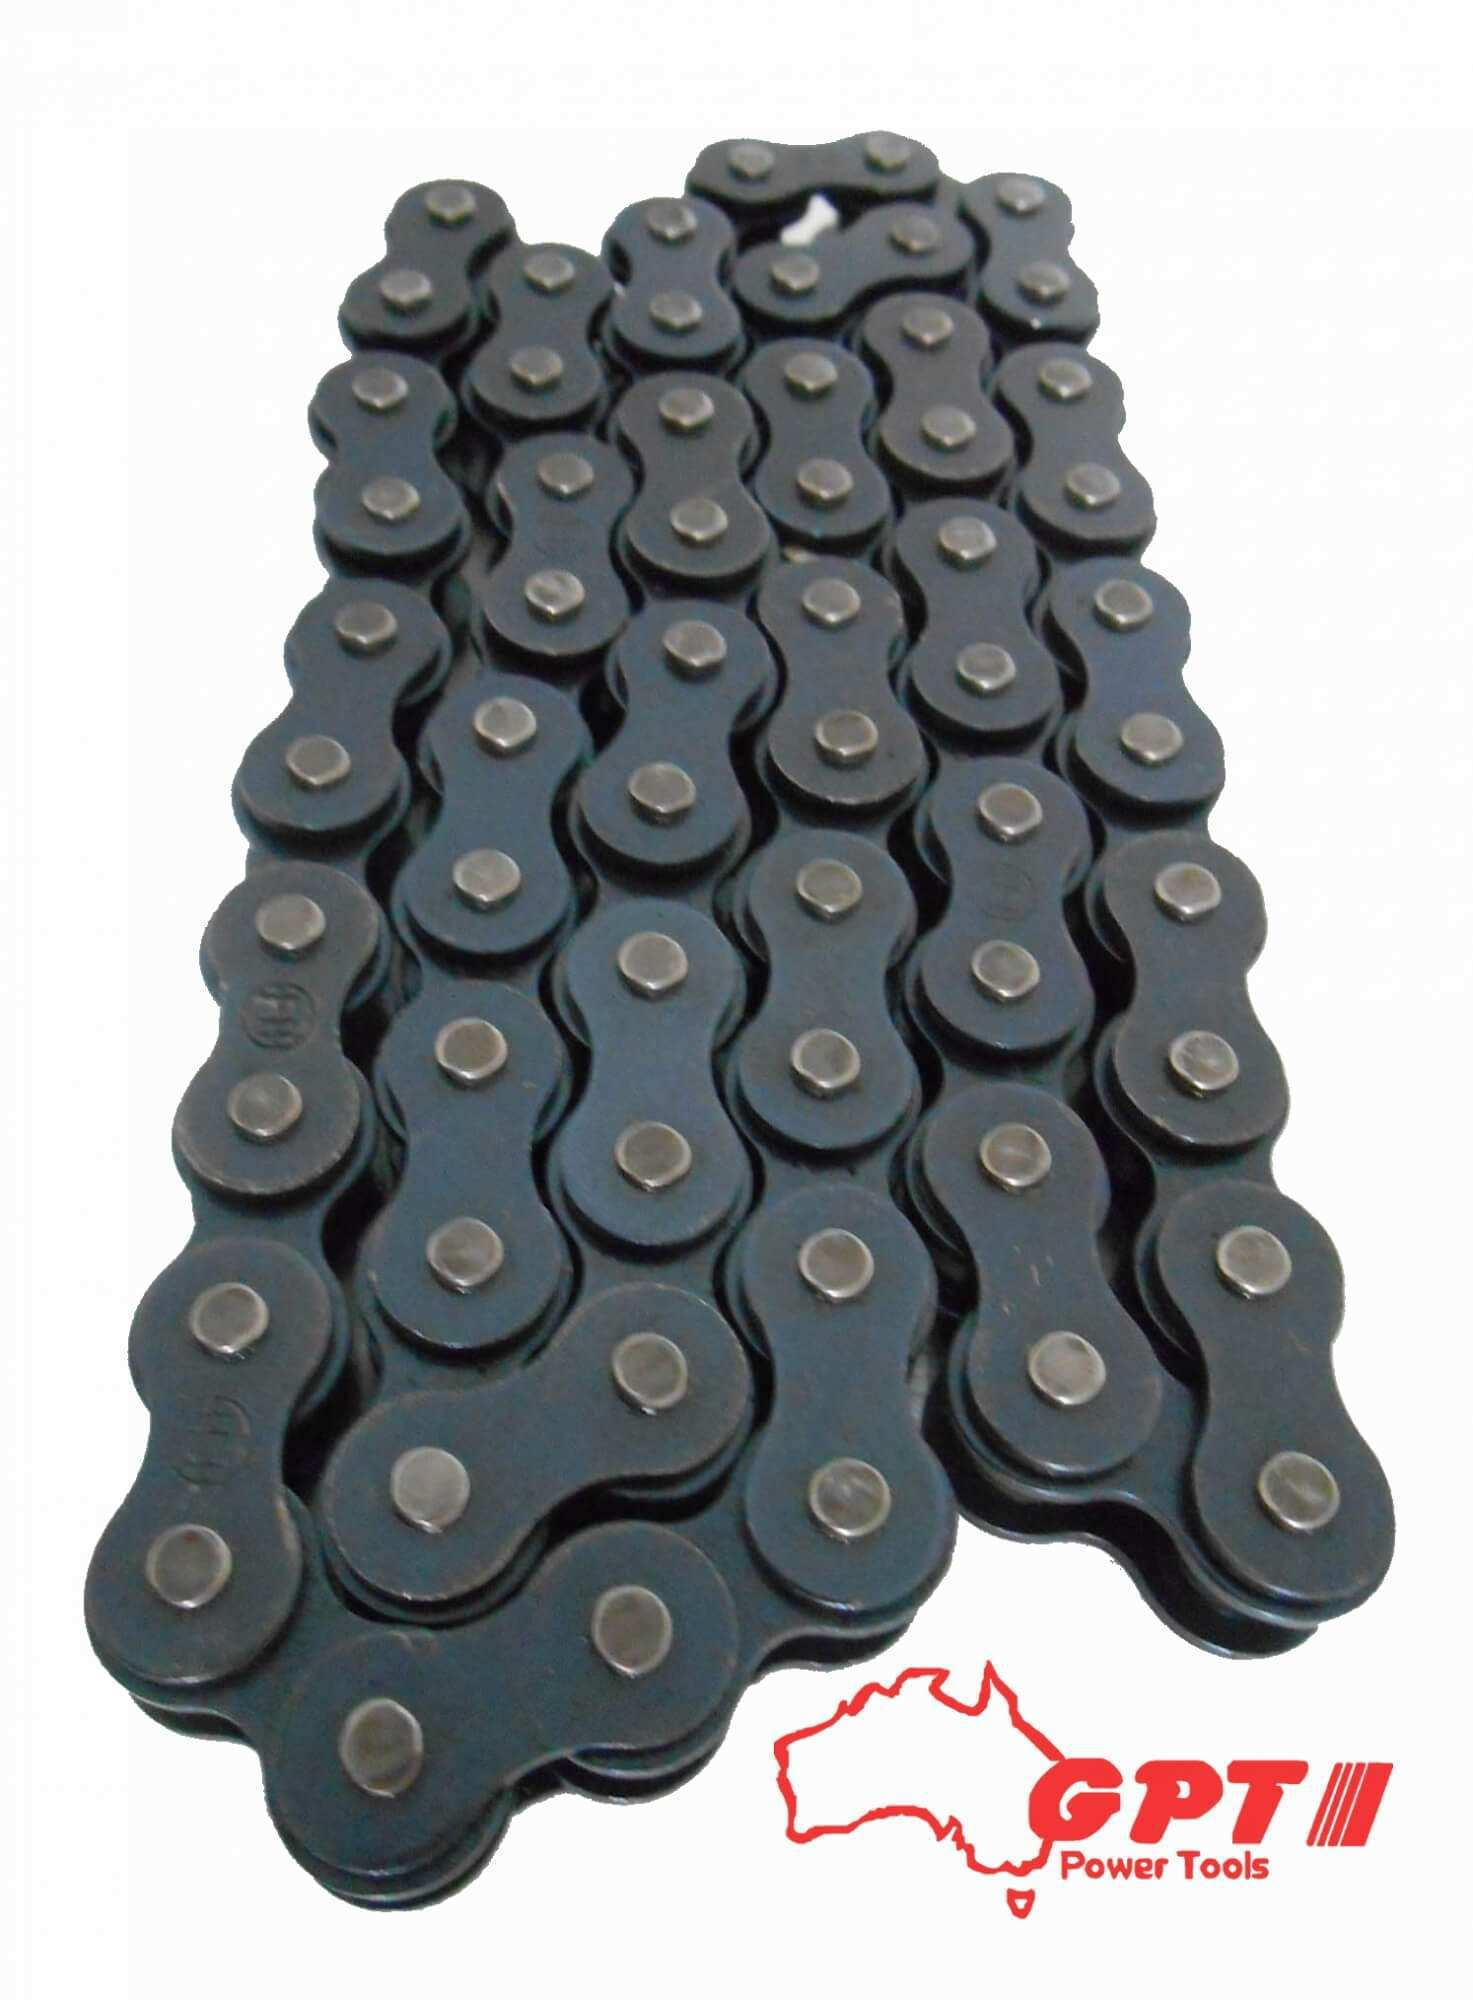 NEW GPT GO KART CHAIN FOR 196CC 4 STROKE ENGINE RUST RESISTANT HEAVY DUTY